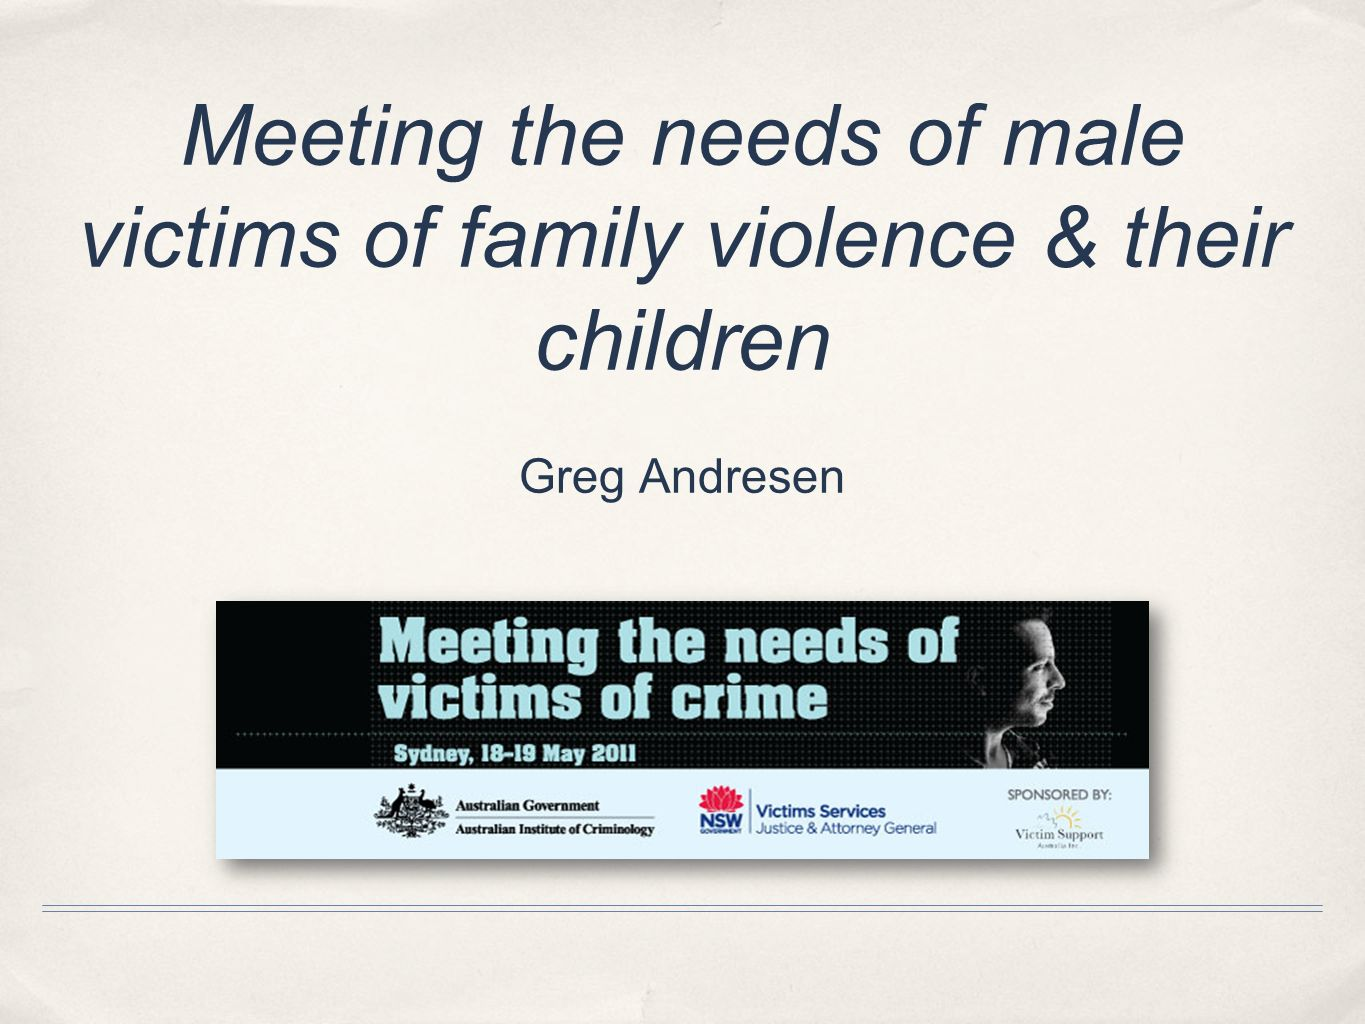 Meeting the needs of male victims of family violence & their children Greg Andresen